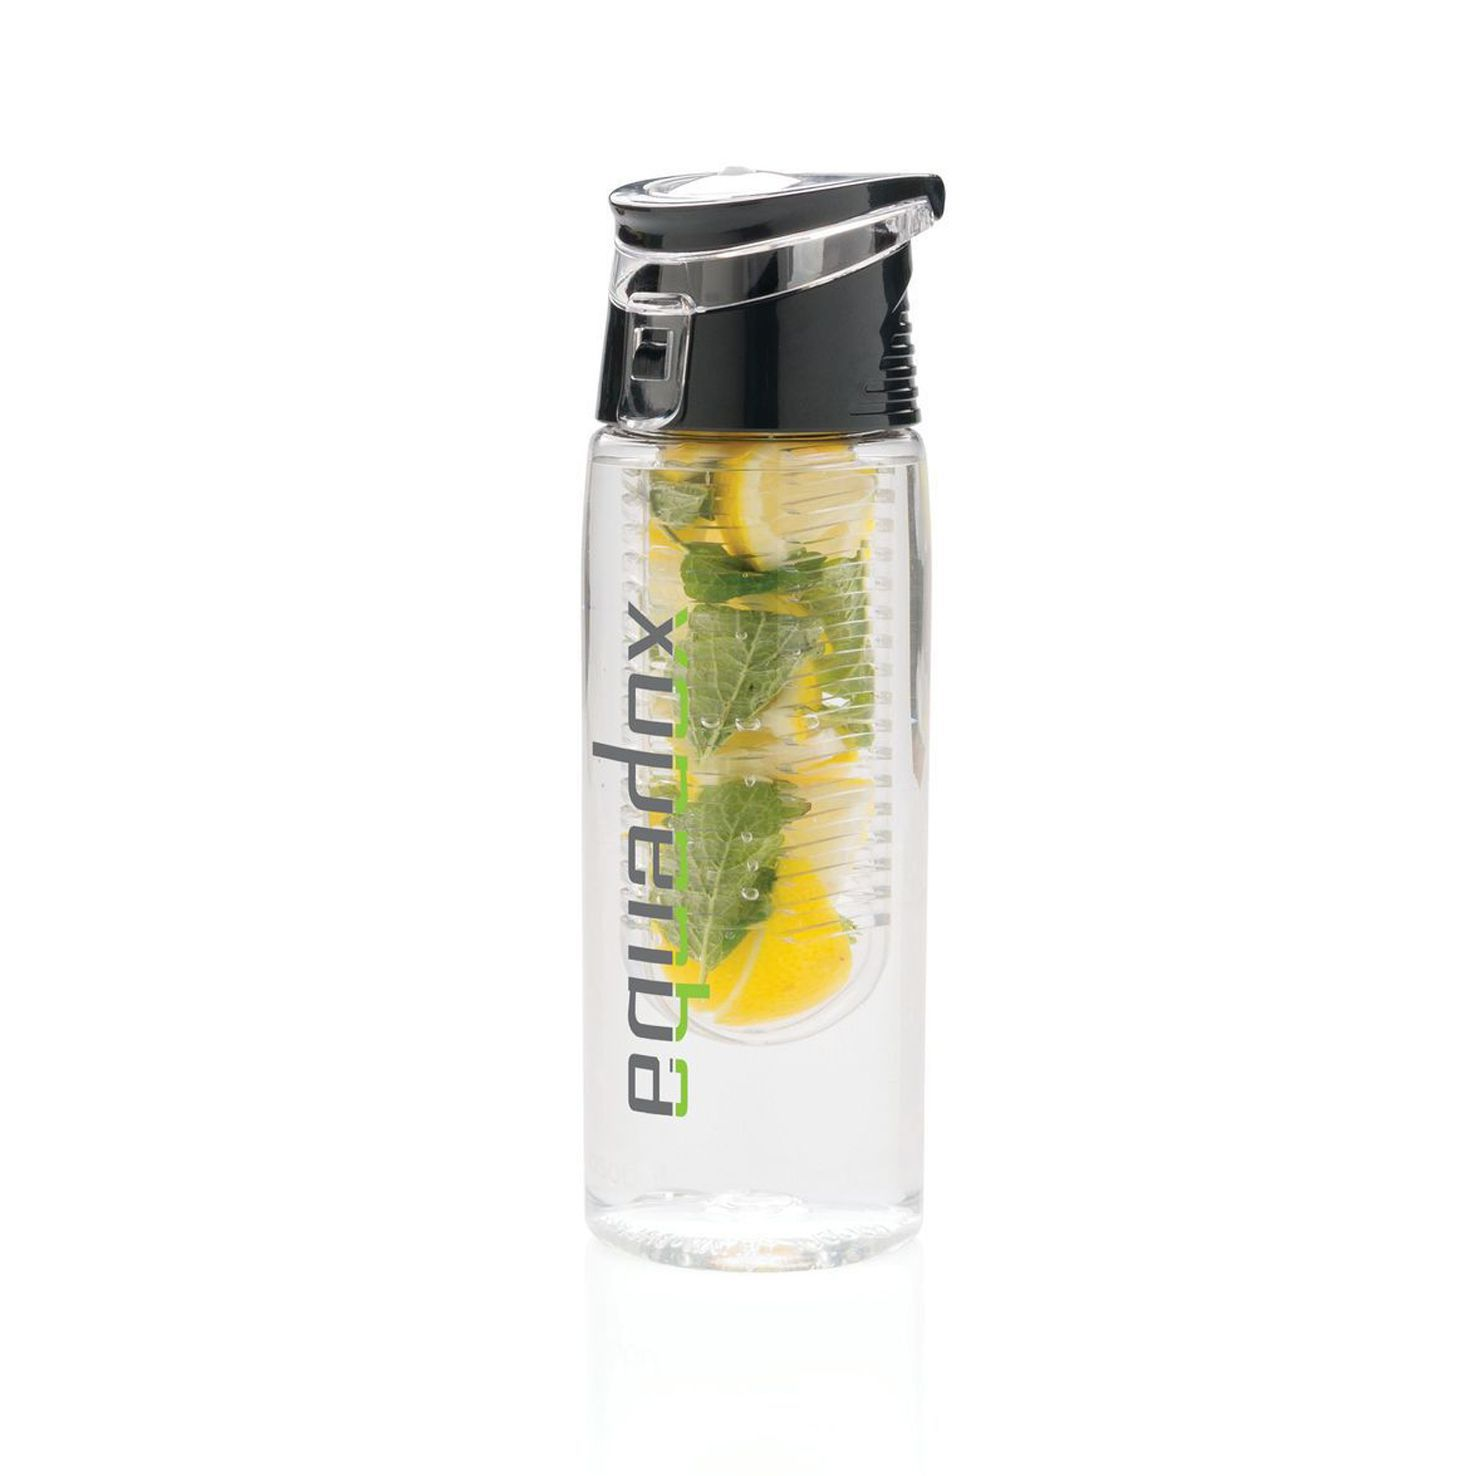 Fruitfles met logo | 700 ml